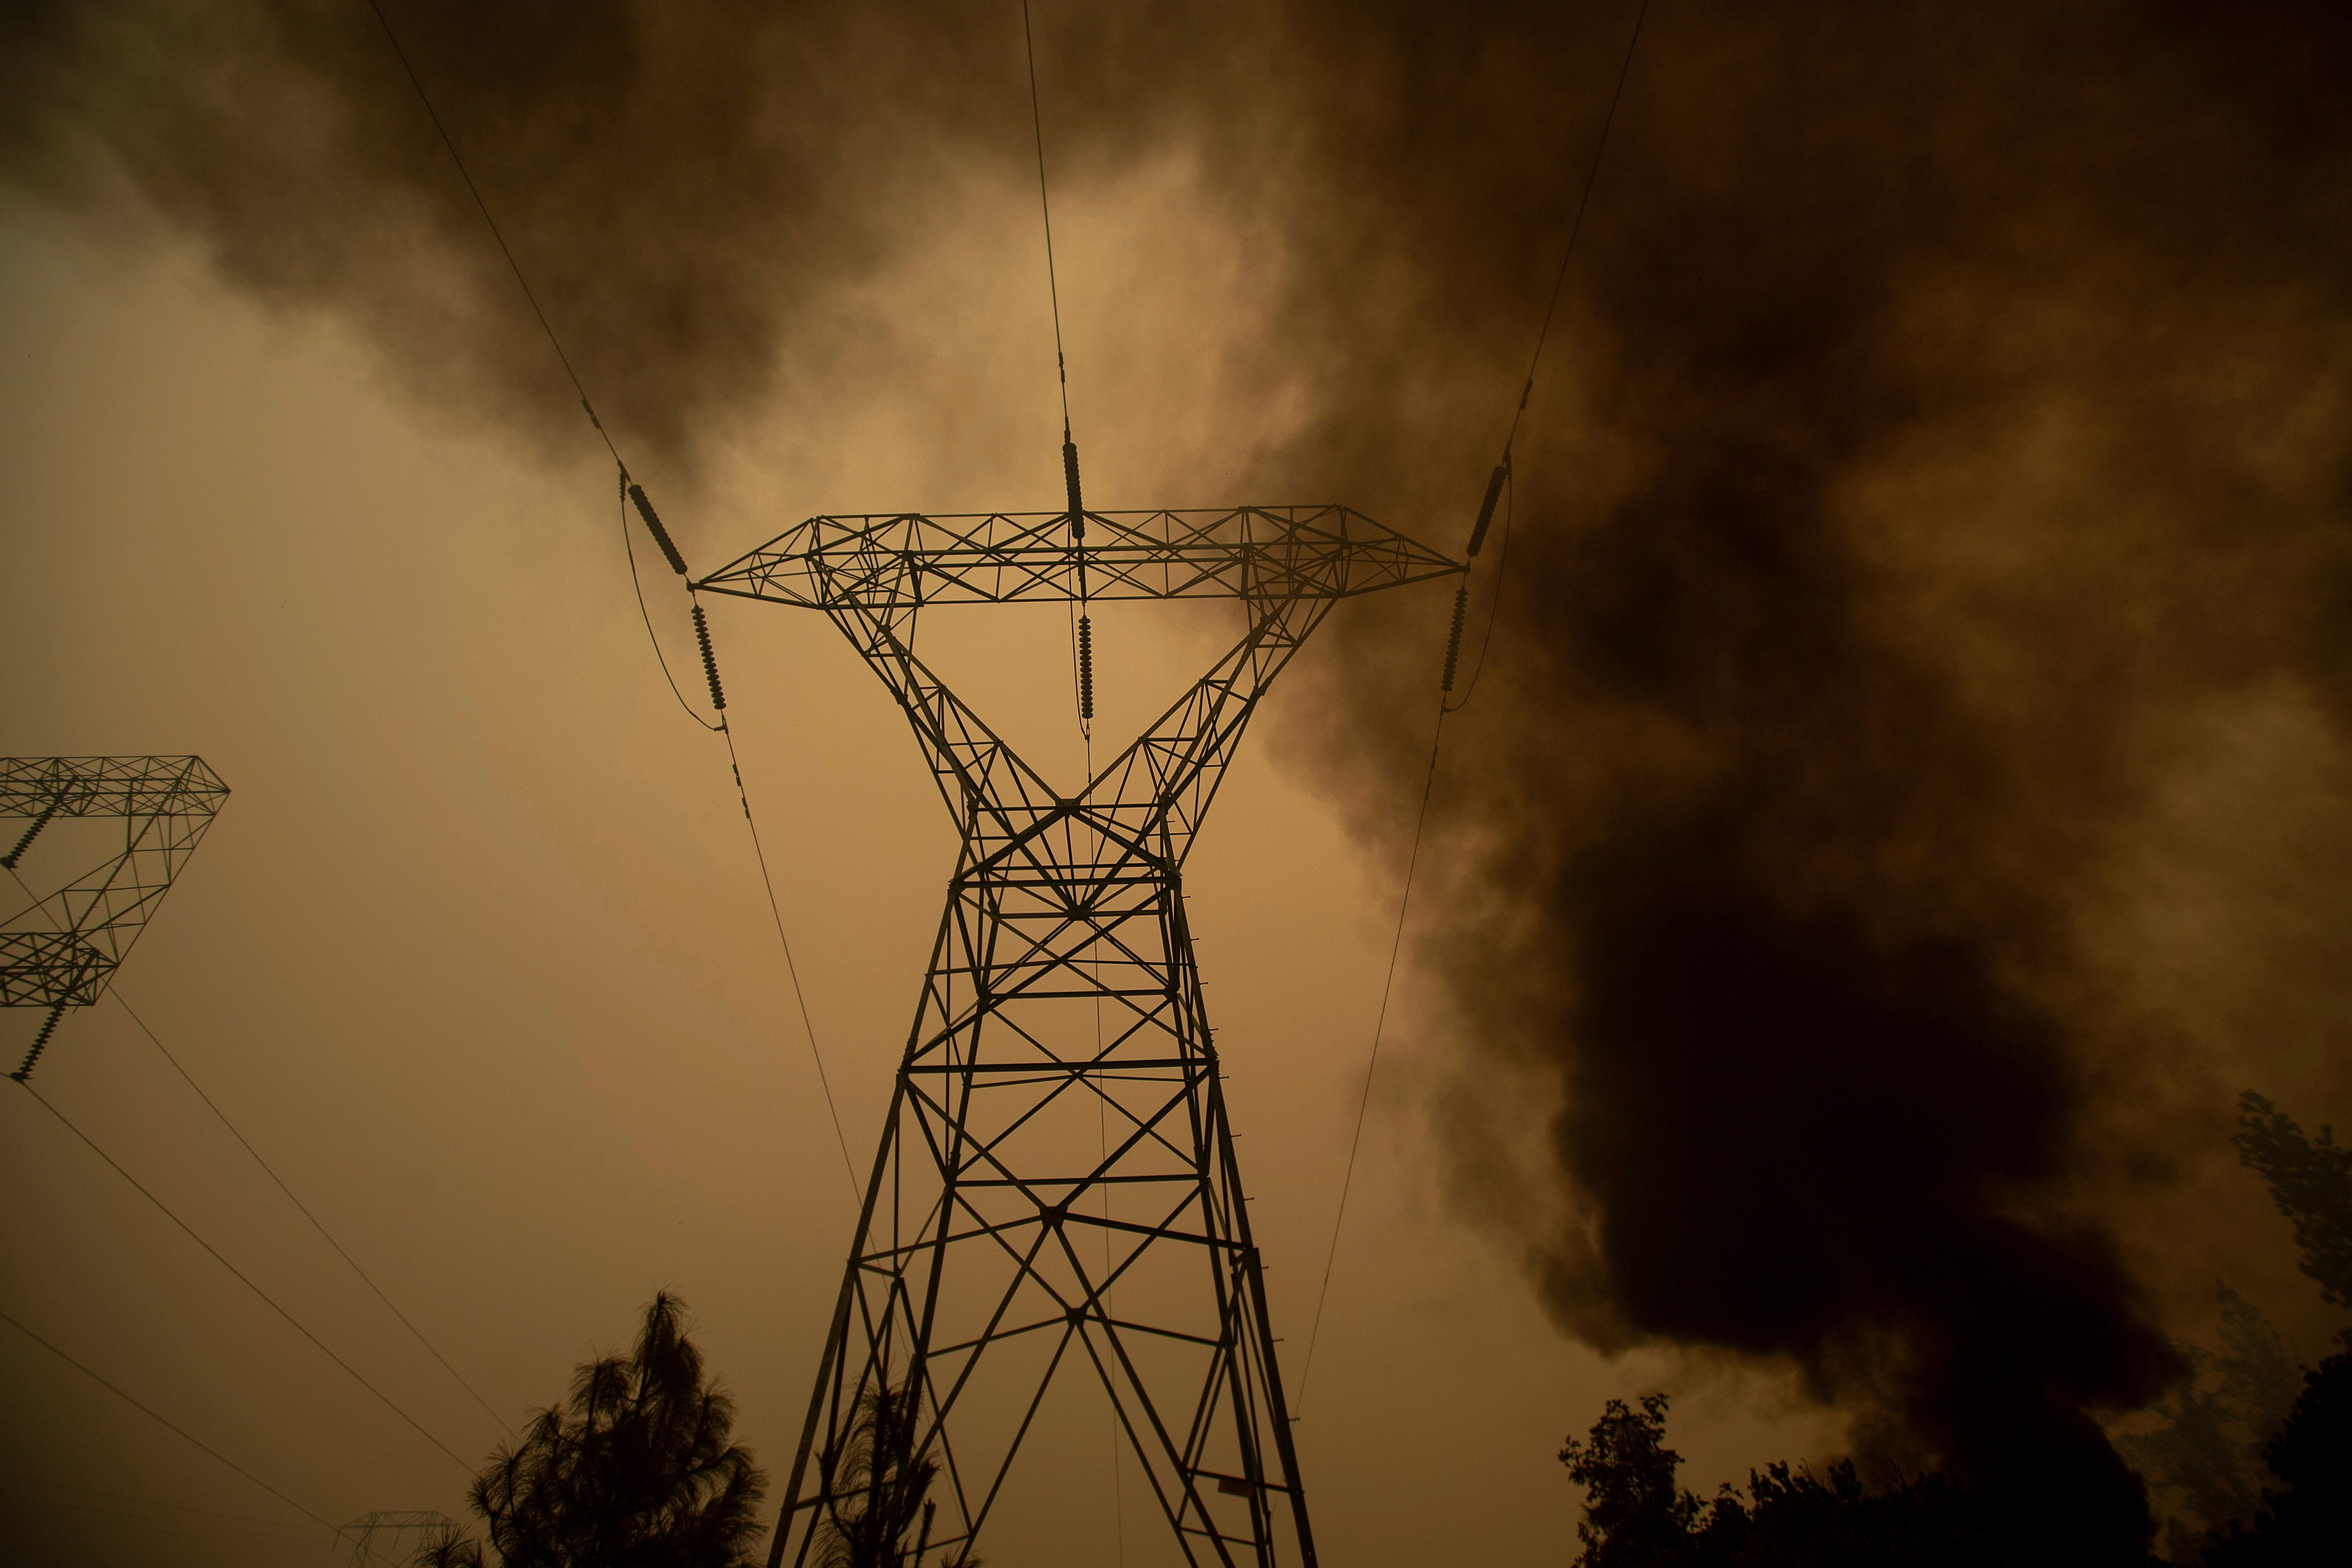 A new round of PGE power outages could put 500,000 Californians in the dark for days